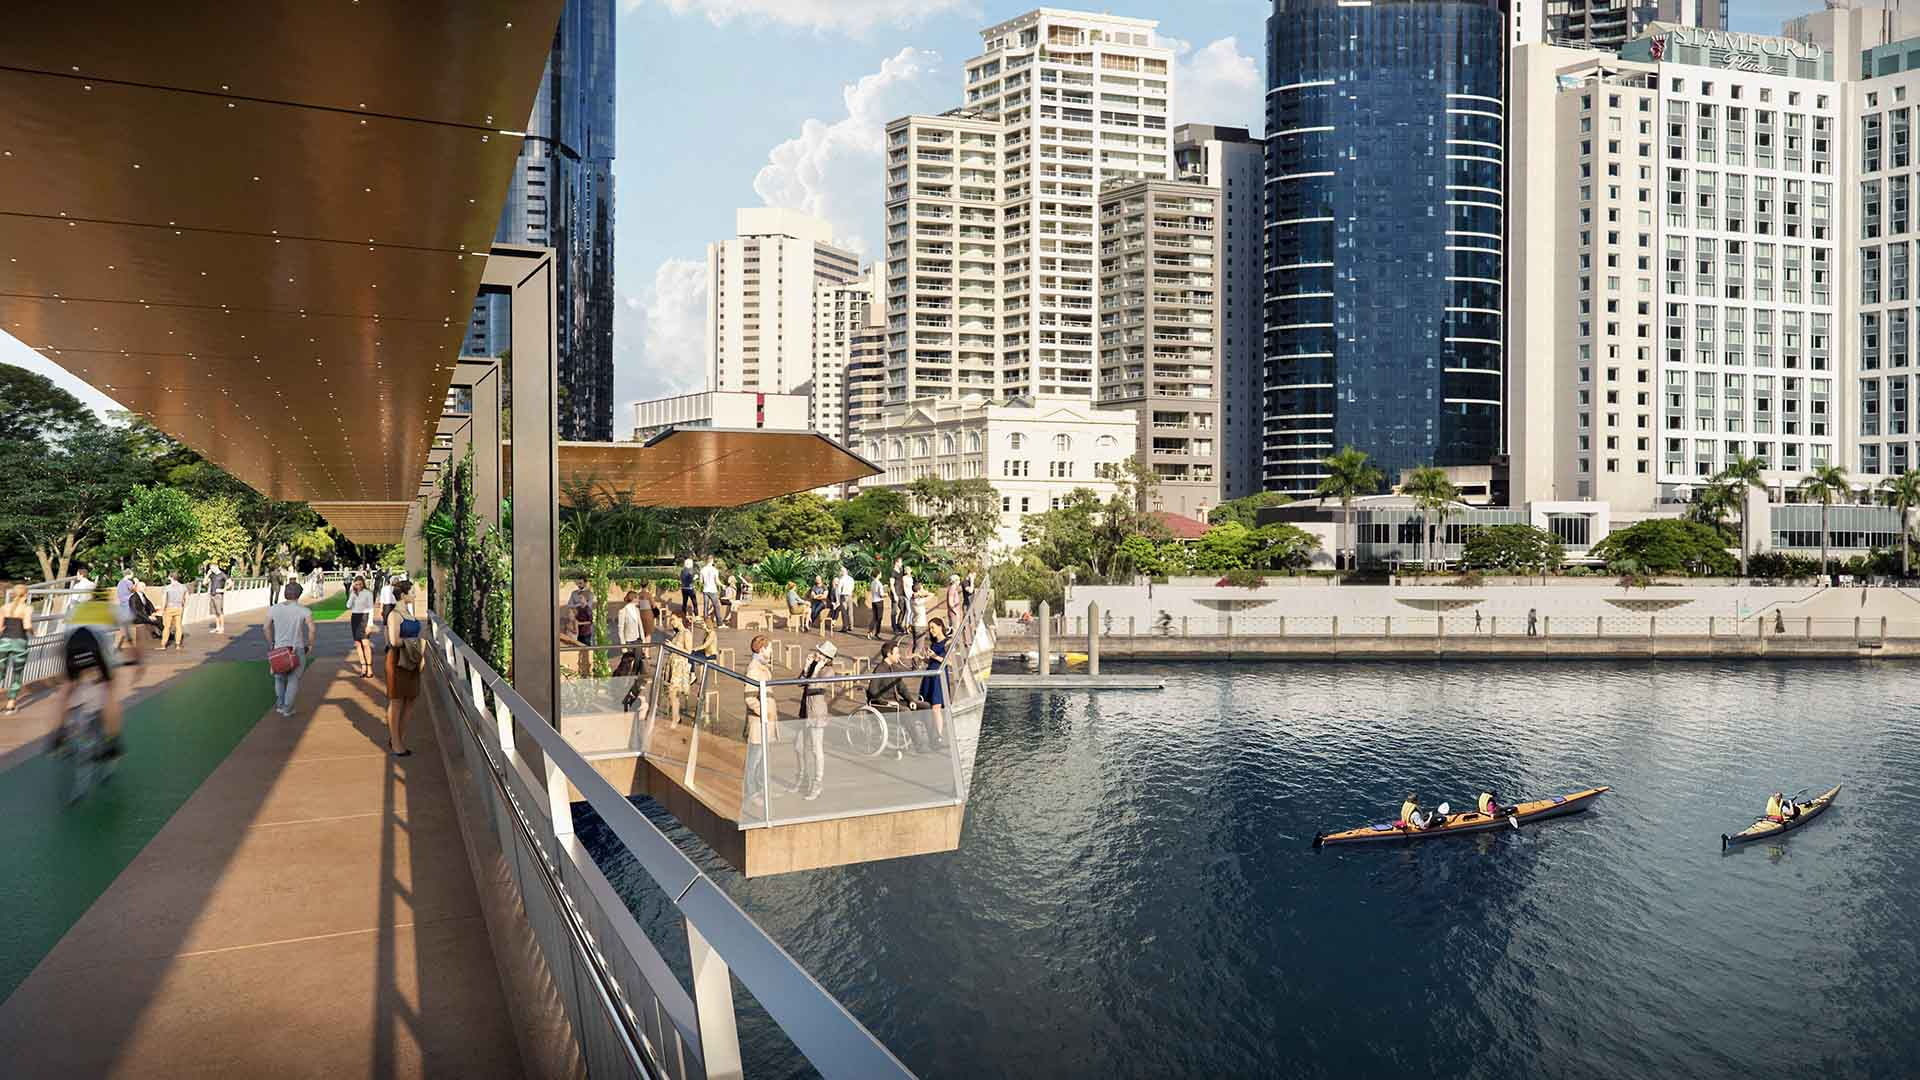 Brisbane Could Soon Be Home to Five New Car-Free Green Bridges Across the River